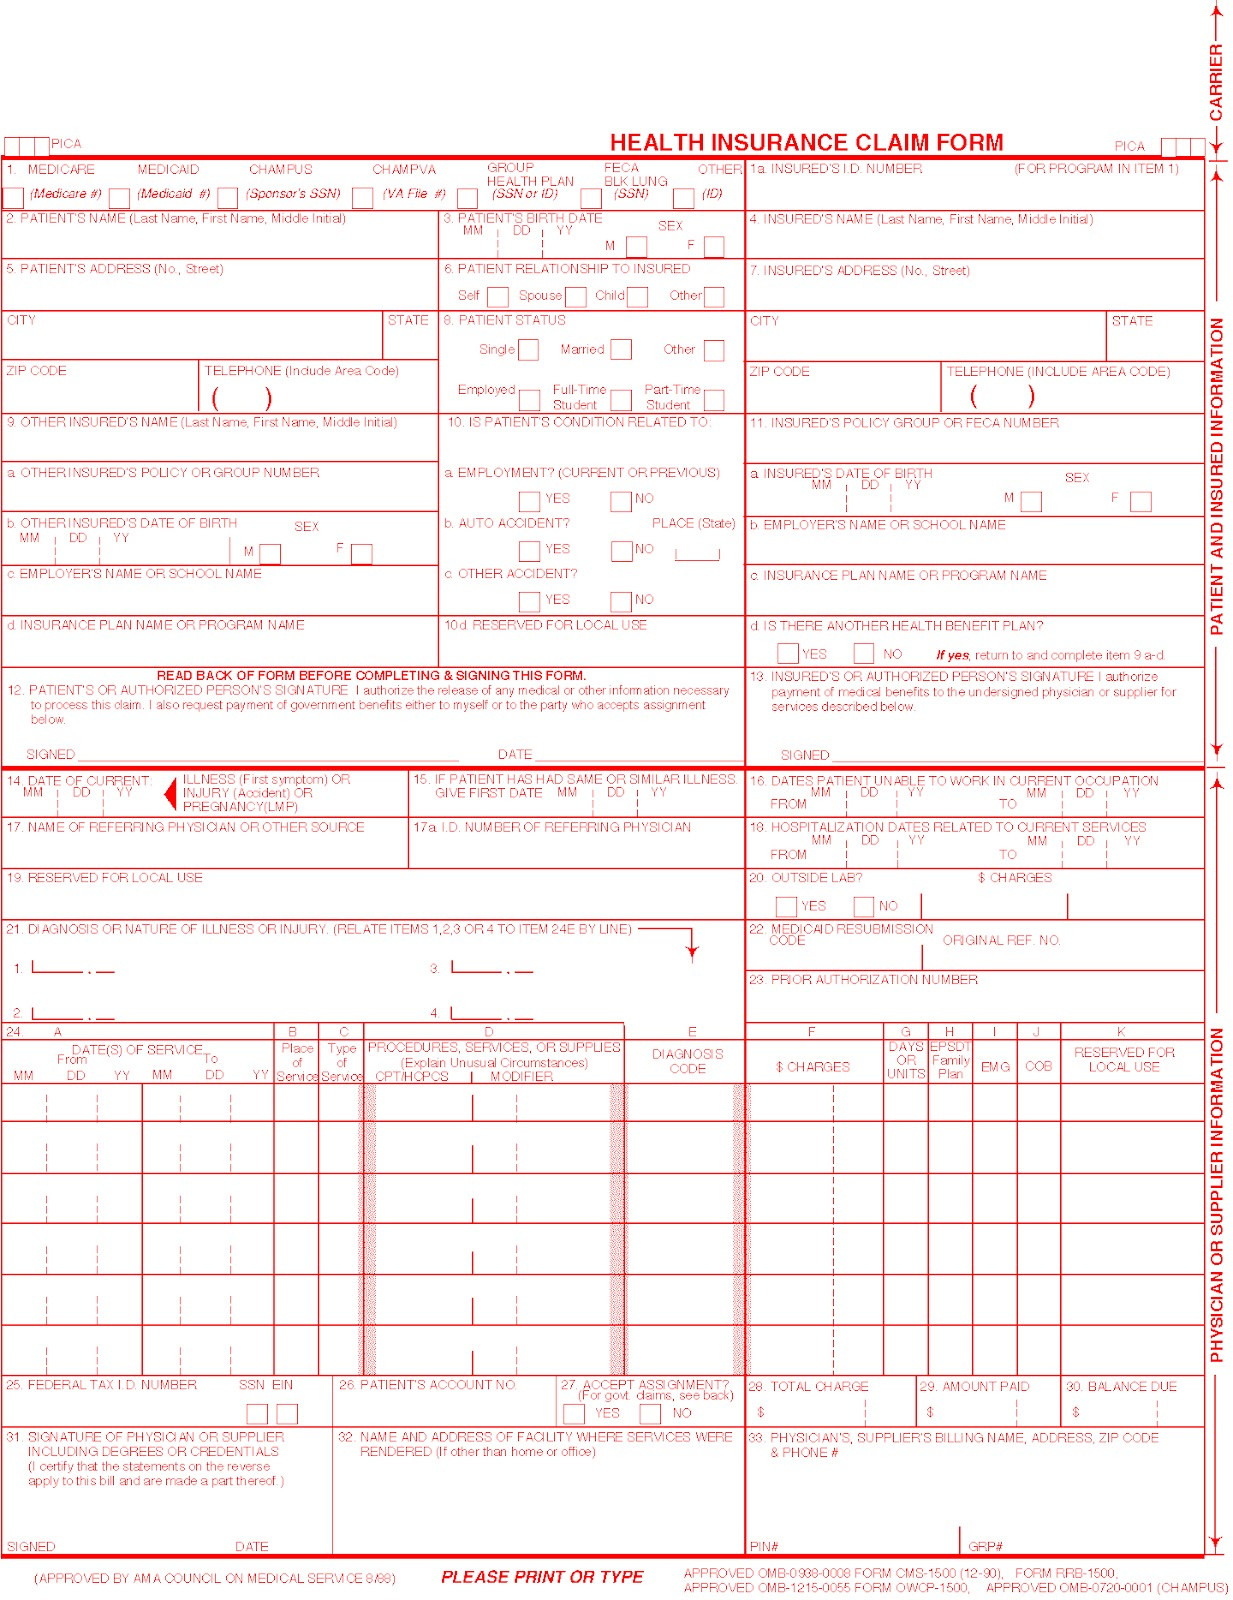 Medical Claim Form 1500 Latest Understanding Your Medical Claims Insurance Claim Forms Aka The